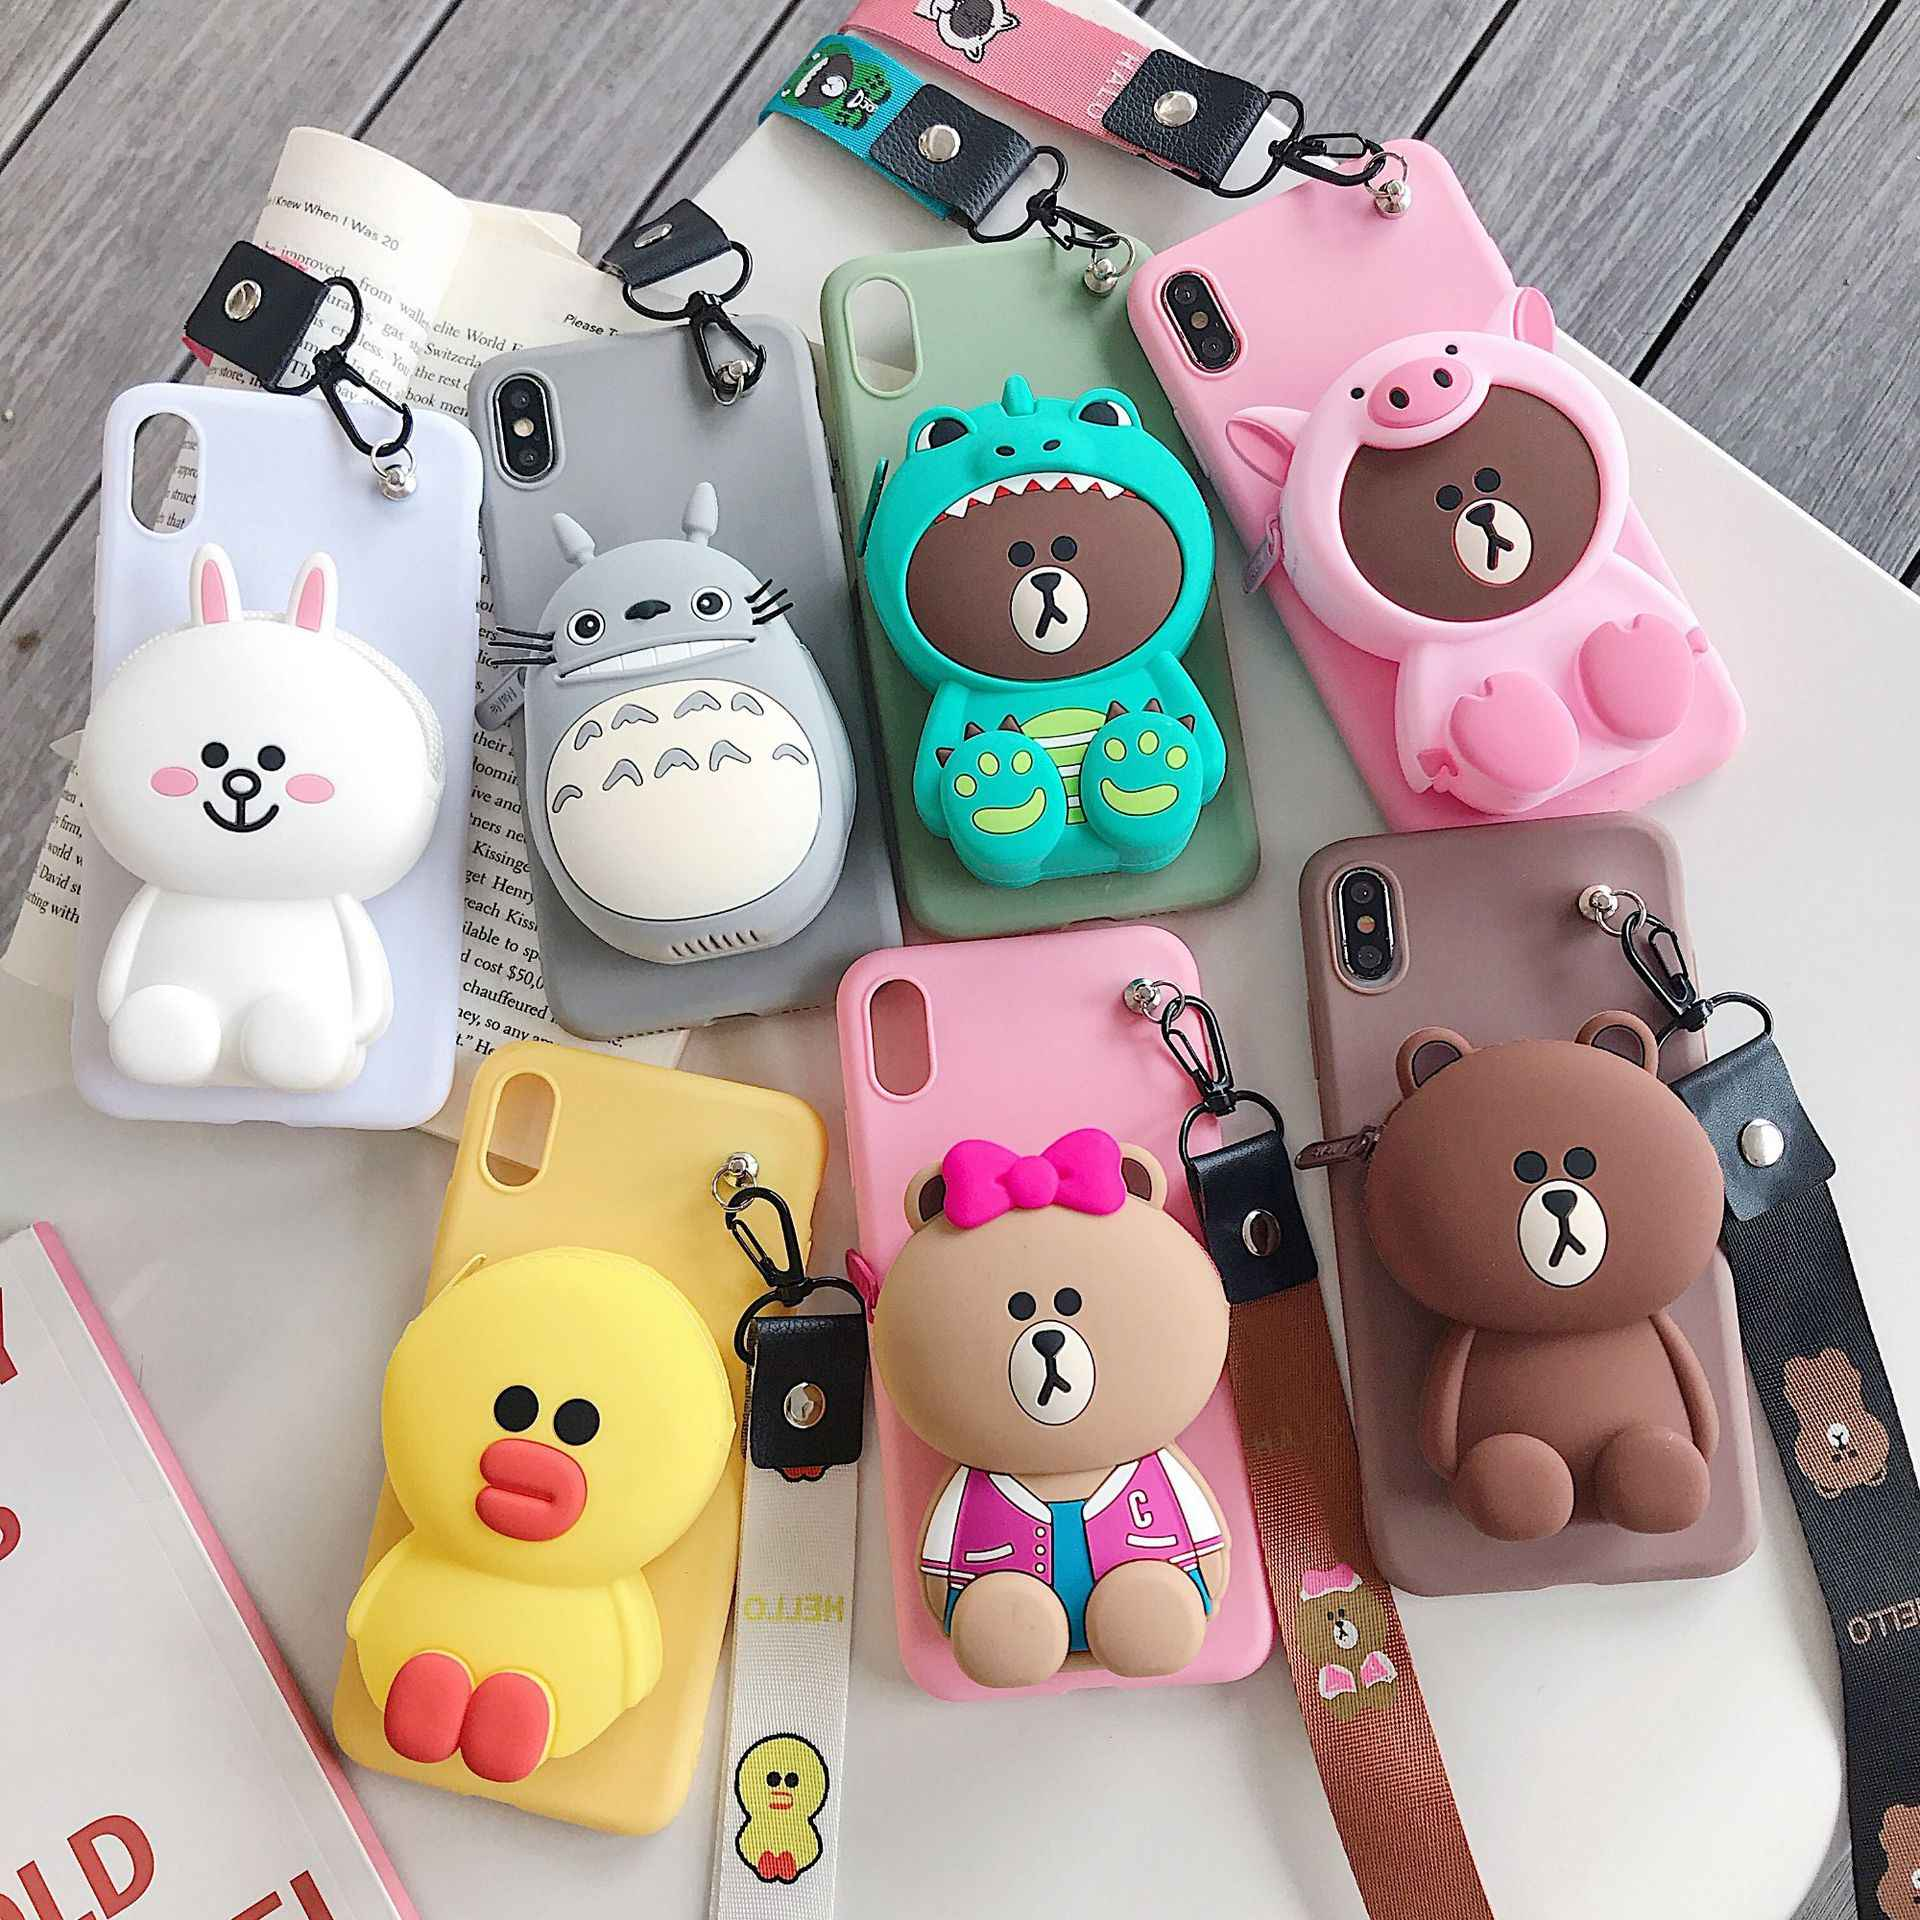 Cute 3D Wallet Design Cat Case For Samsung Galaxy A6 Plus 2018 A5 2017 A3 2016 Animals Pig Soft TPU Cover